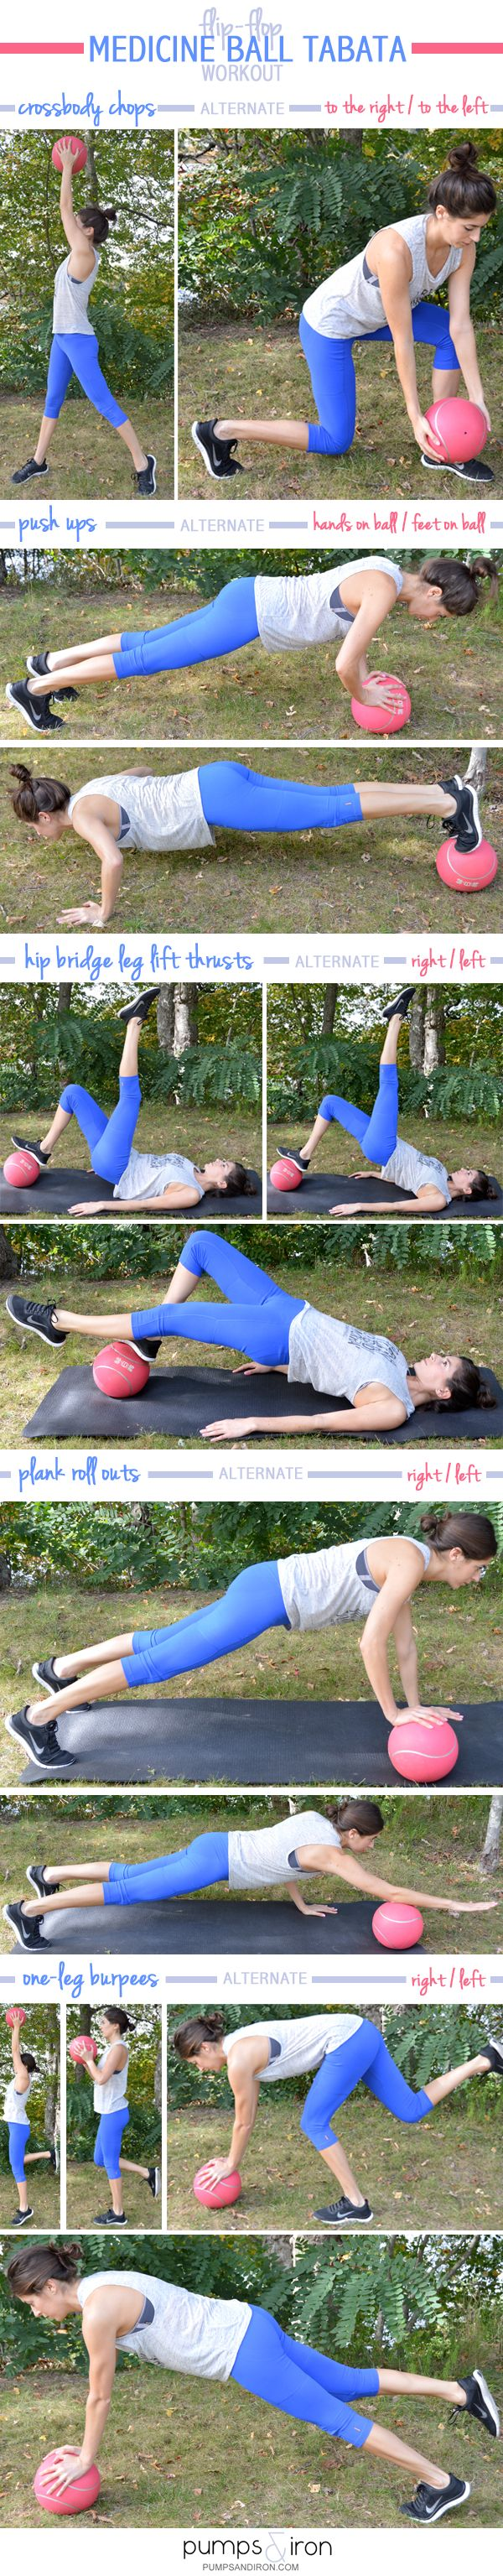 Hanging knee raises with medicine ball - 159 Best Images About Exercise With Medicine Ball On Pinterest Medicine Ball Abs Exercise And Pilates